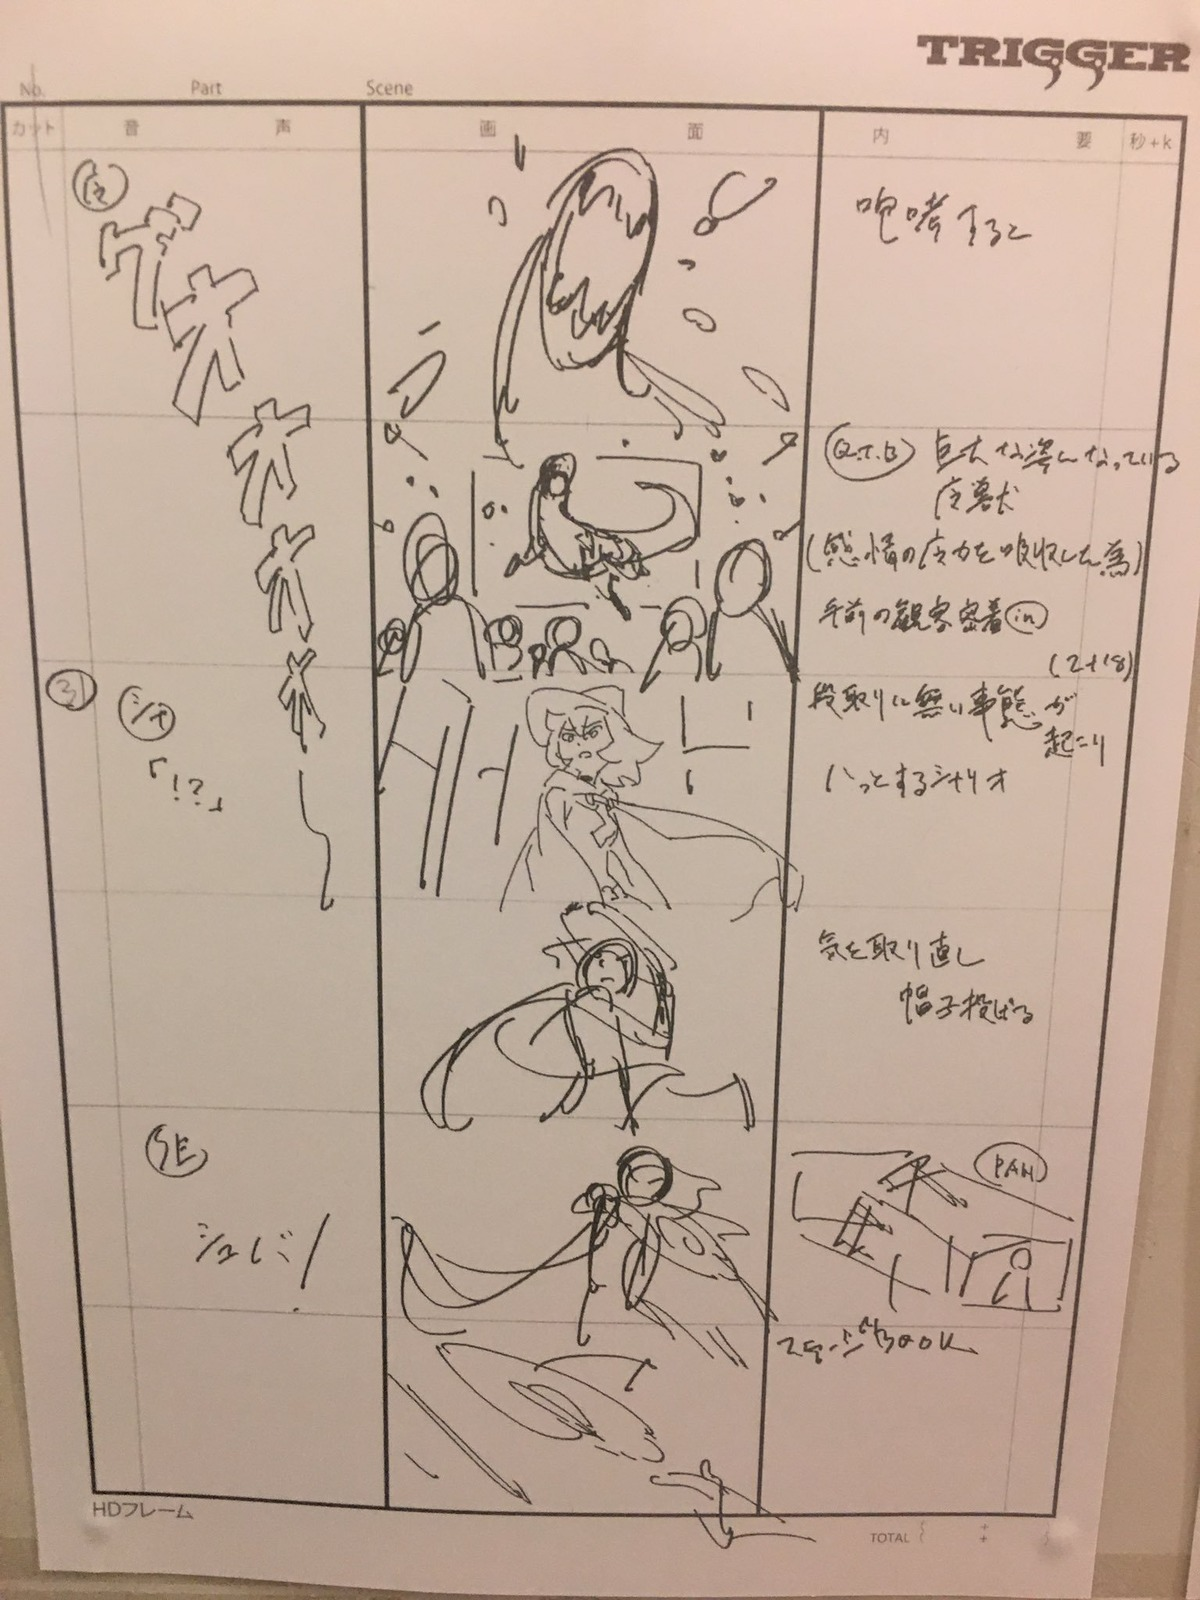 A storyboard from Little With Academia by Yô Yoshinari